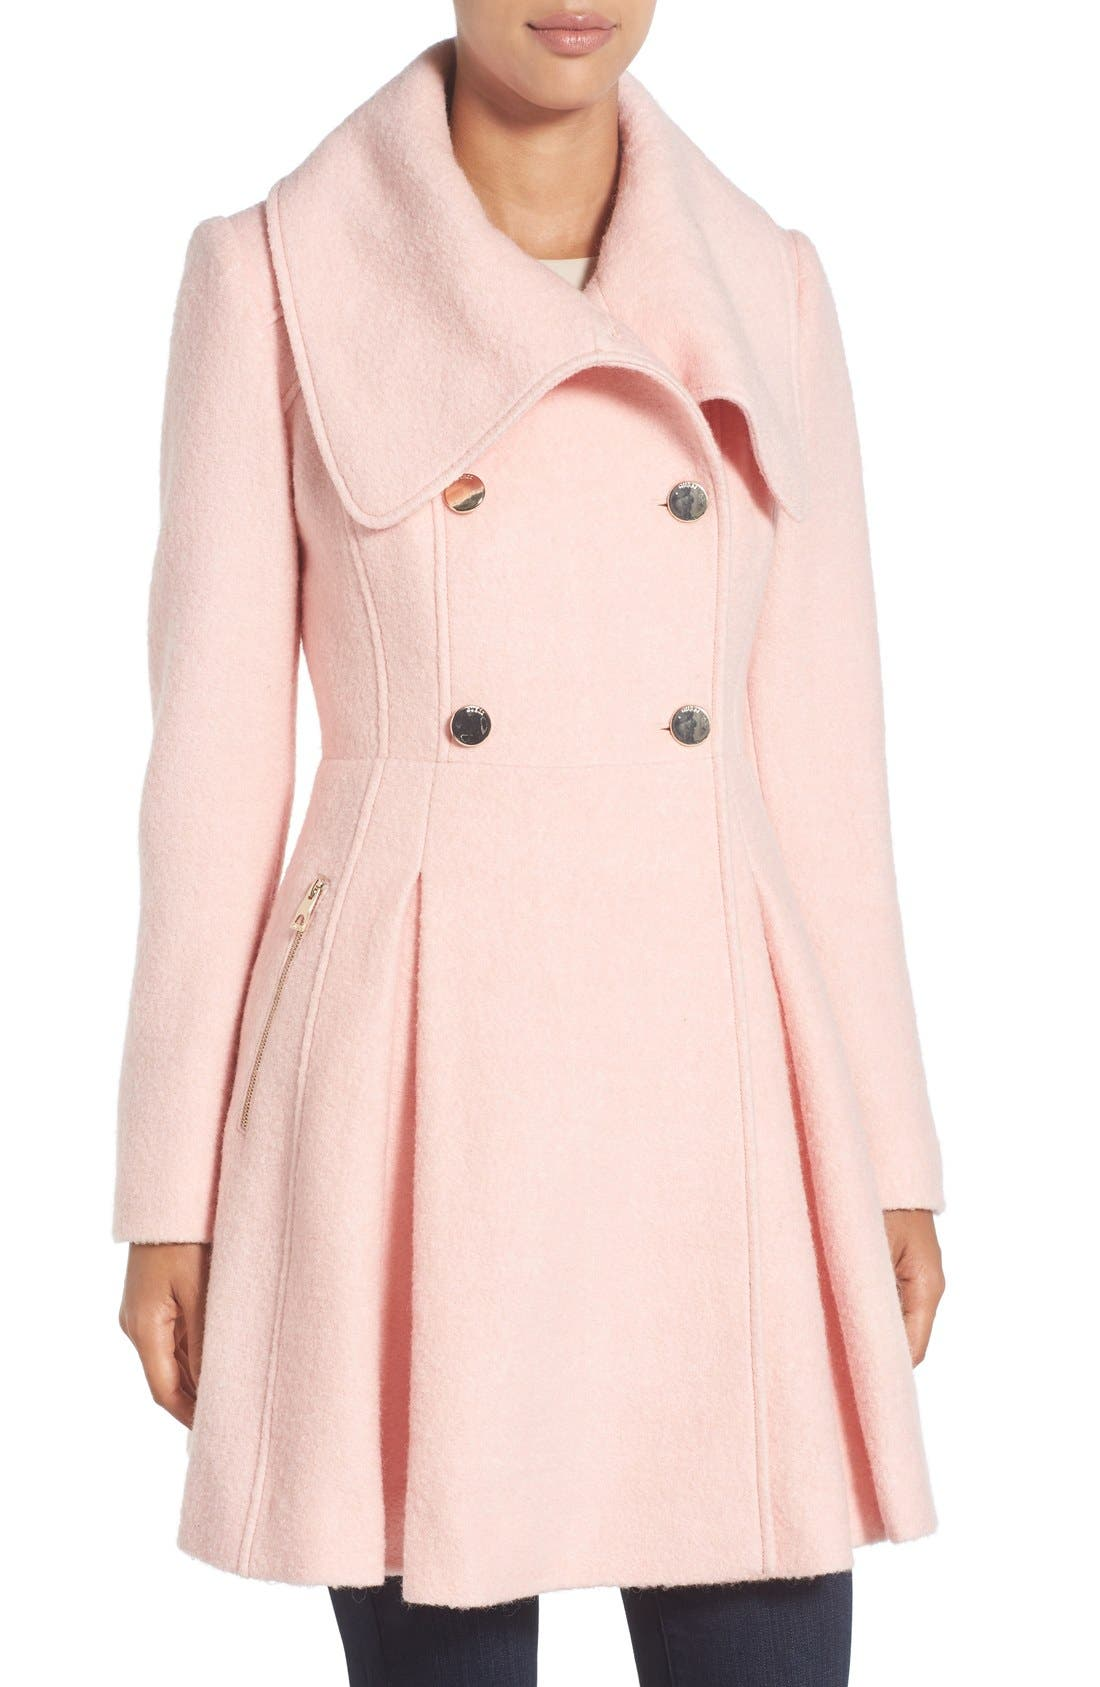 Main Image - GUESS Envelope Collar Double Breasted Coat (Regular & Petite)